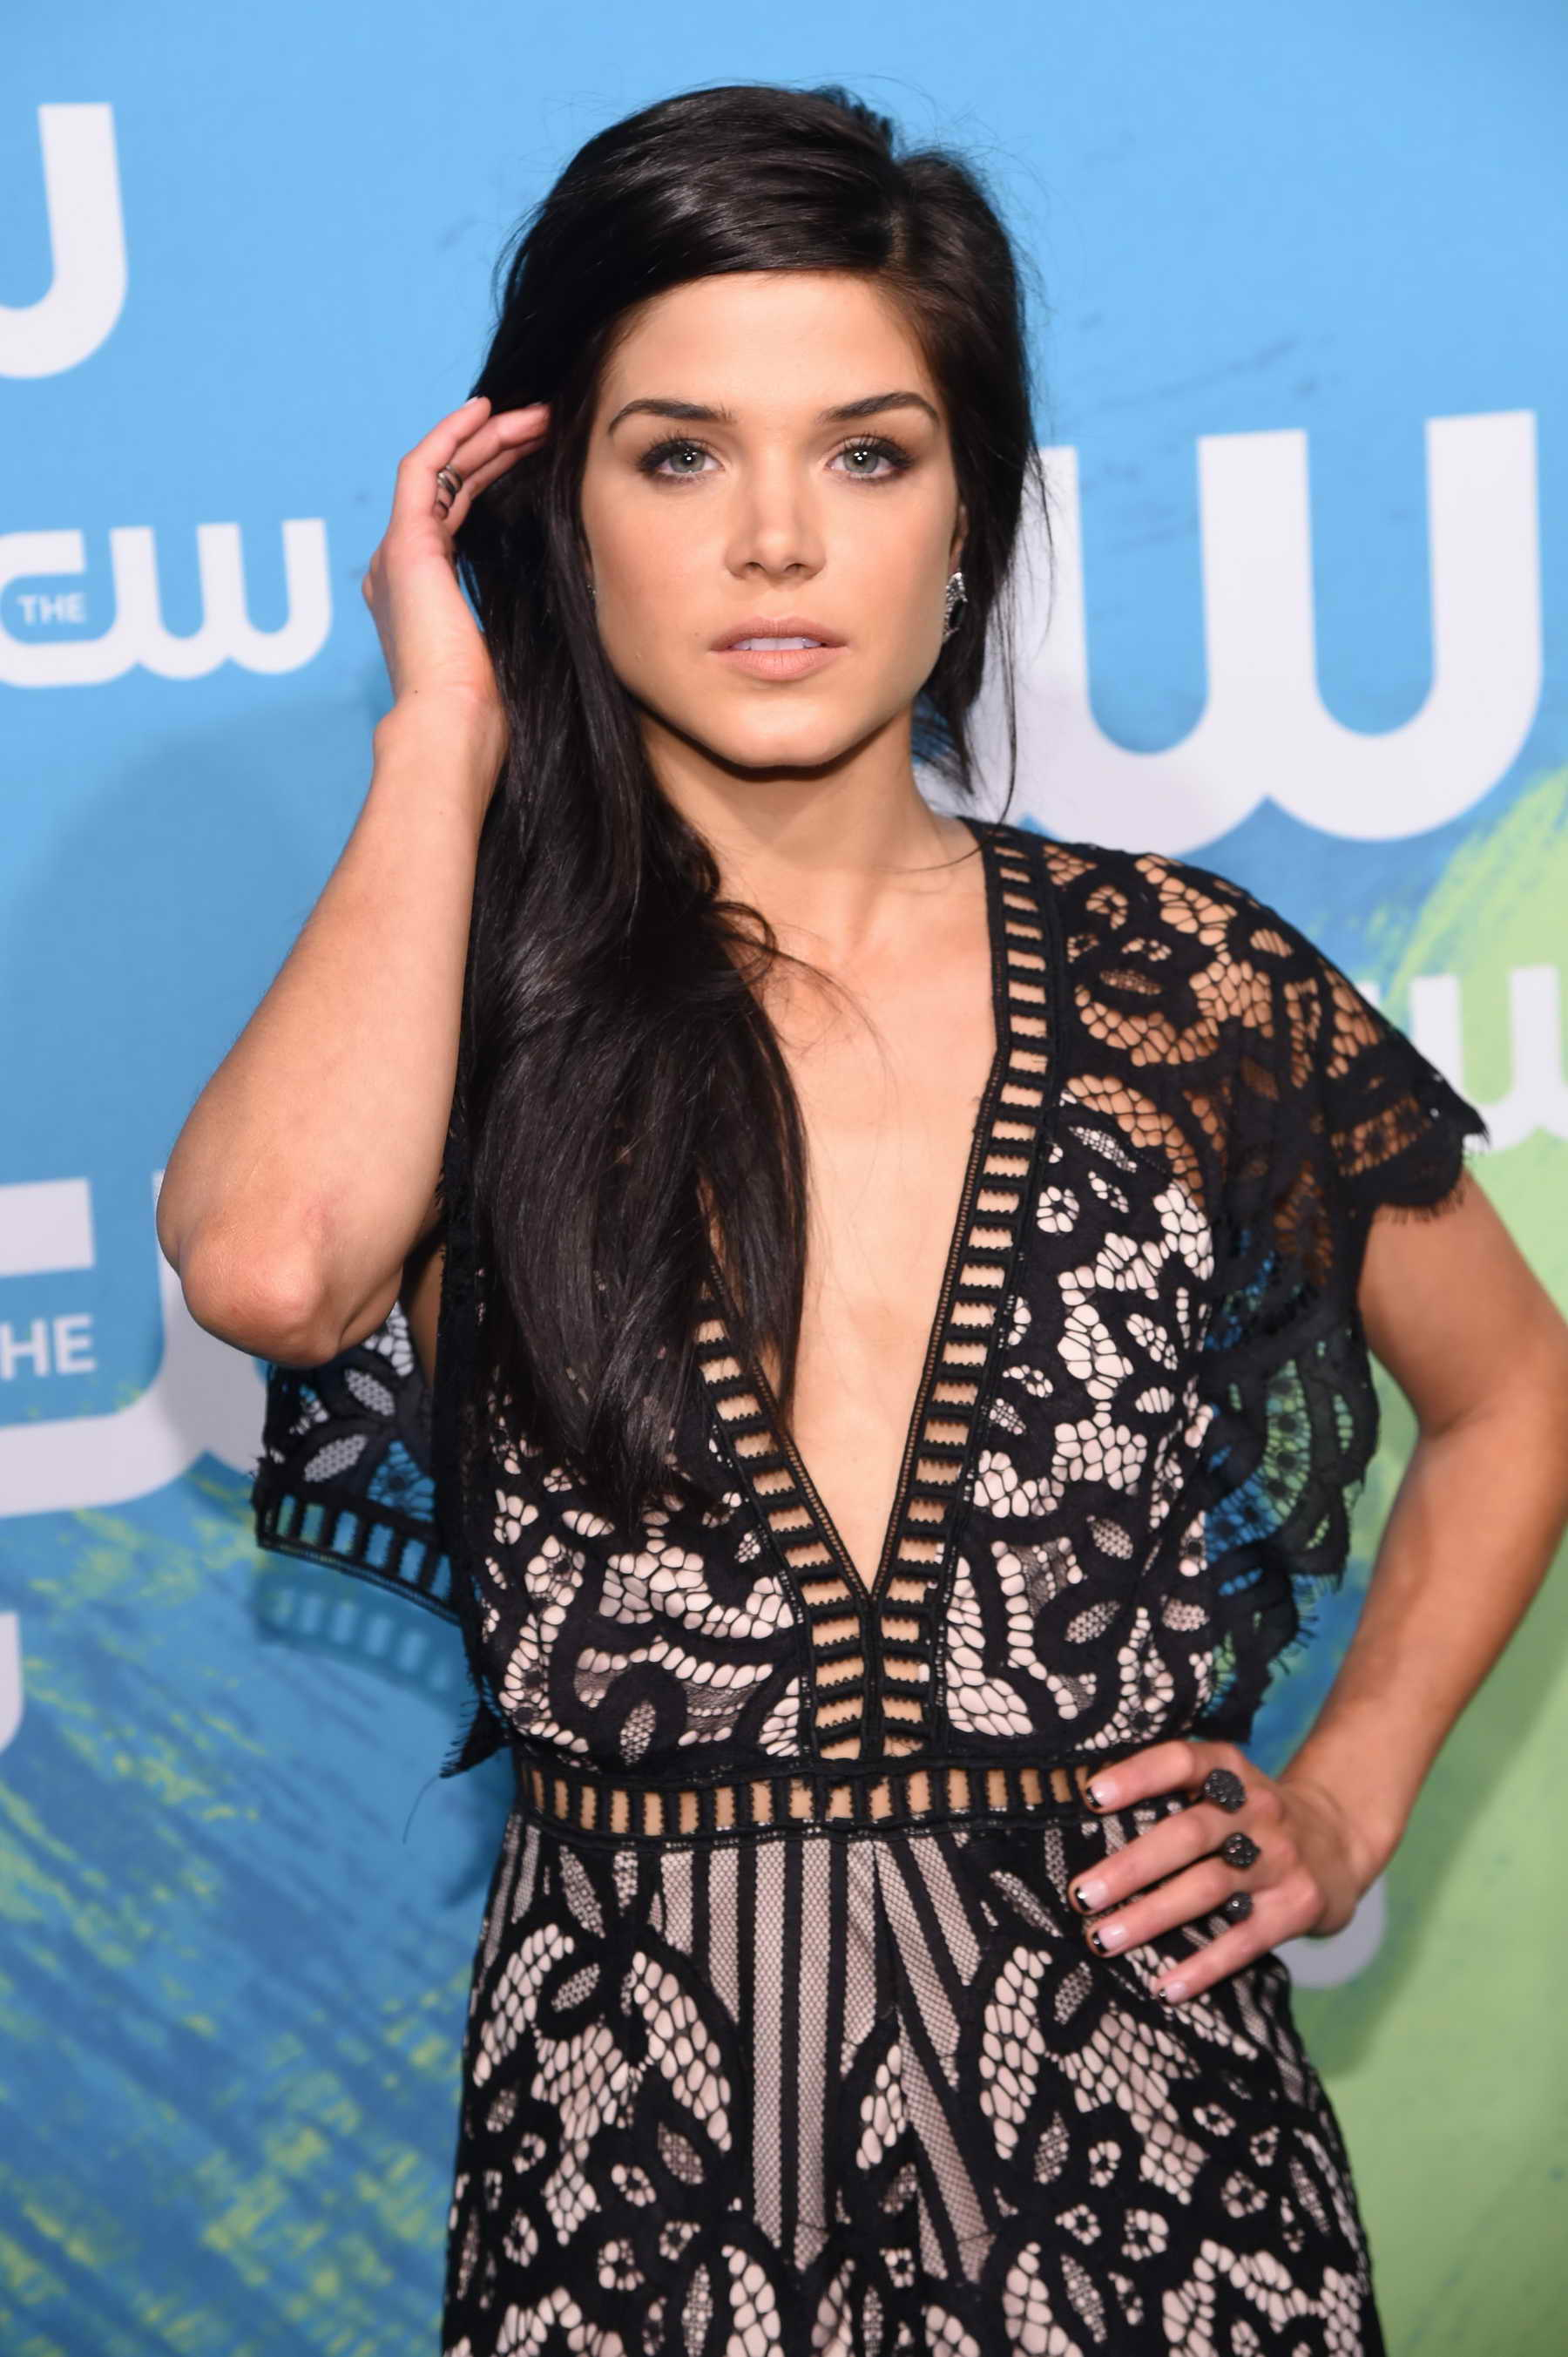 Marie Avgeropoulos - Marie Avgeropoulos Photos - The CW